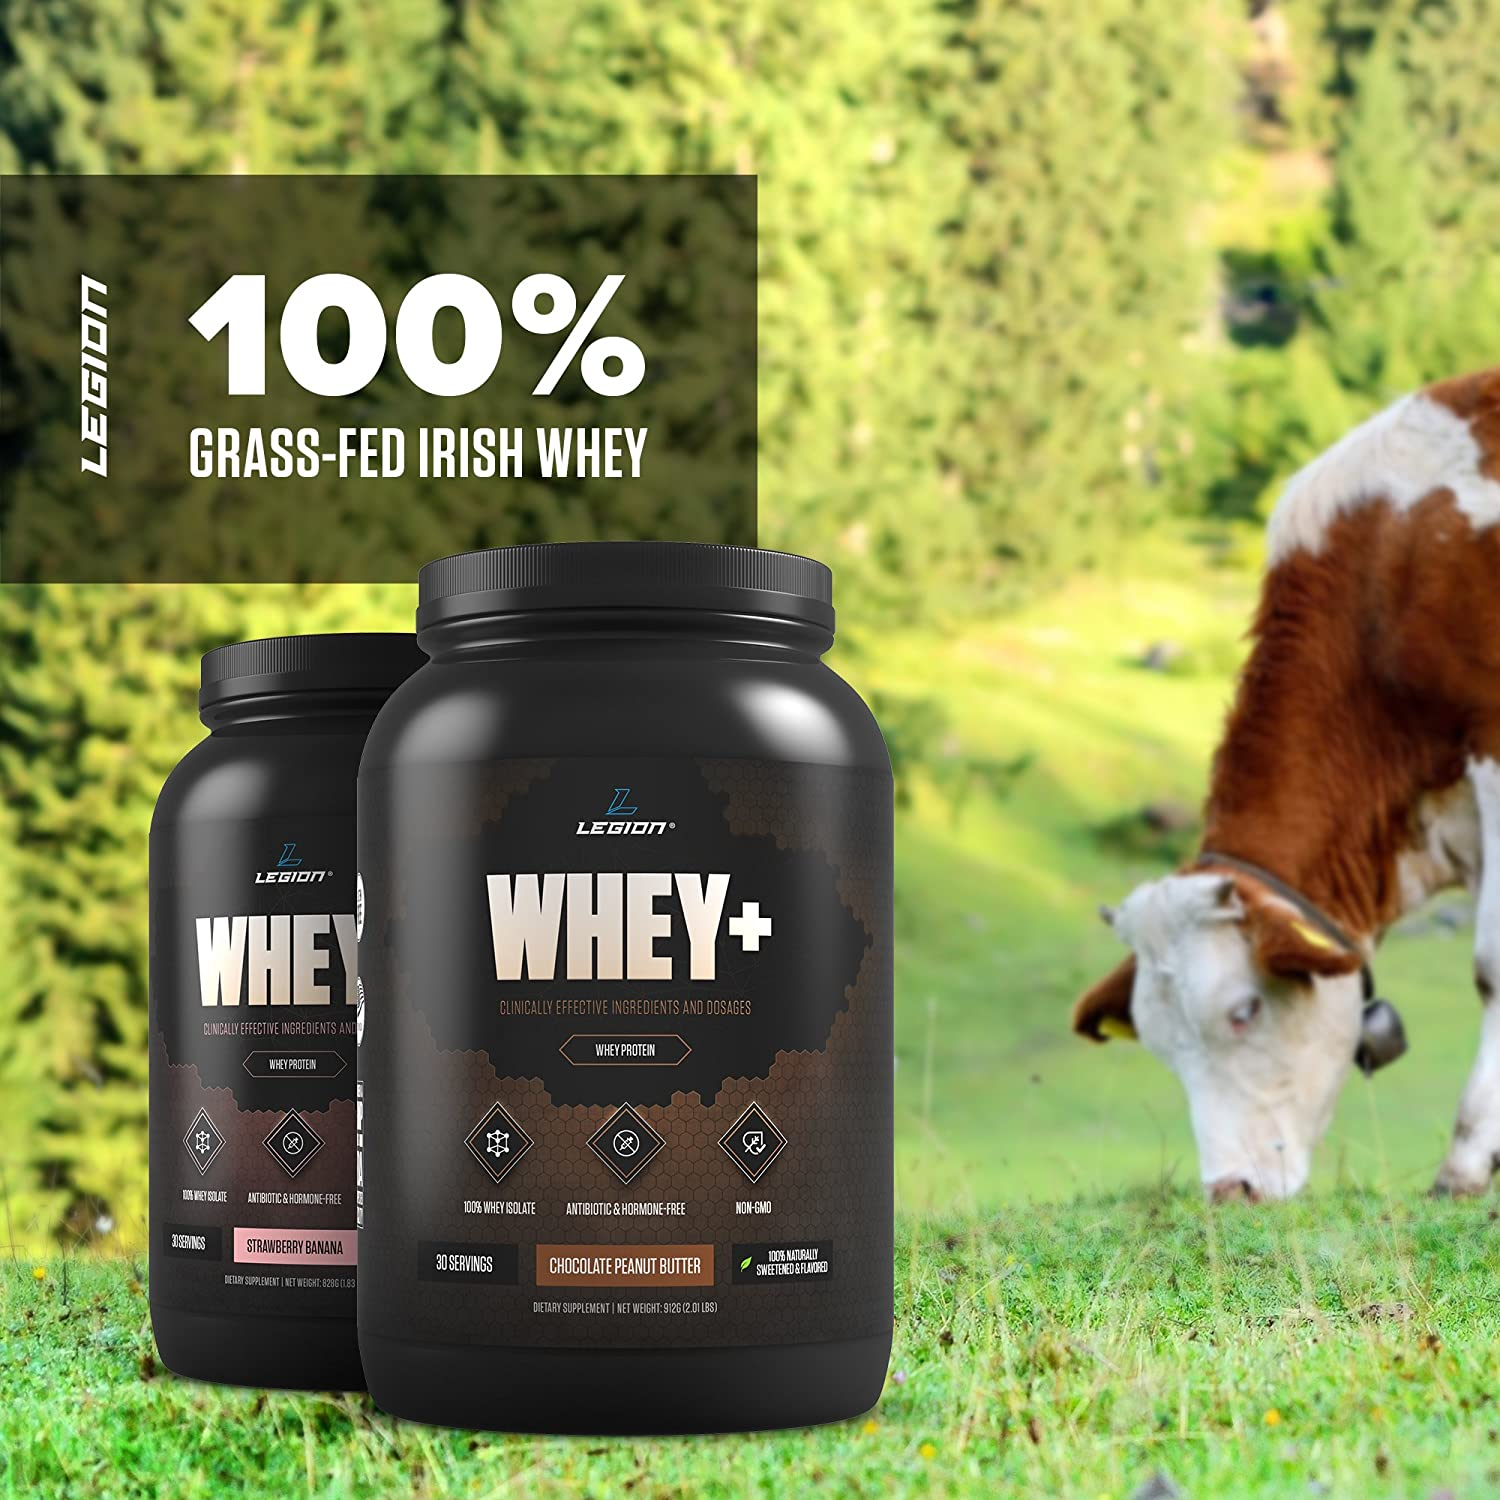 Legion Whey Strawberry Banana Whey Isolate Protein Powder from Grass Fed Cows – Low Carb, Low Calorie, Non-GMO, Lactose Free, Gluten Free, Sugar Free. Great for Weight Loss Bodybuilding, 30 Svgs.